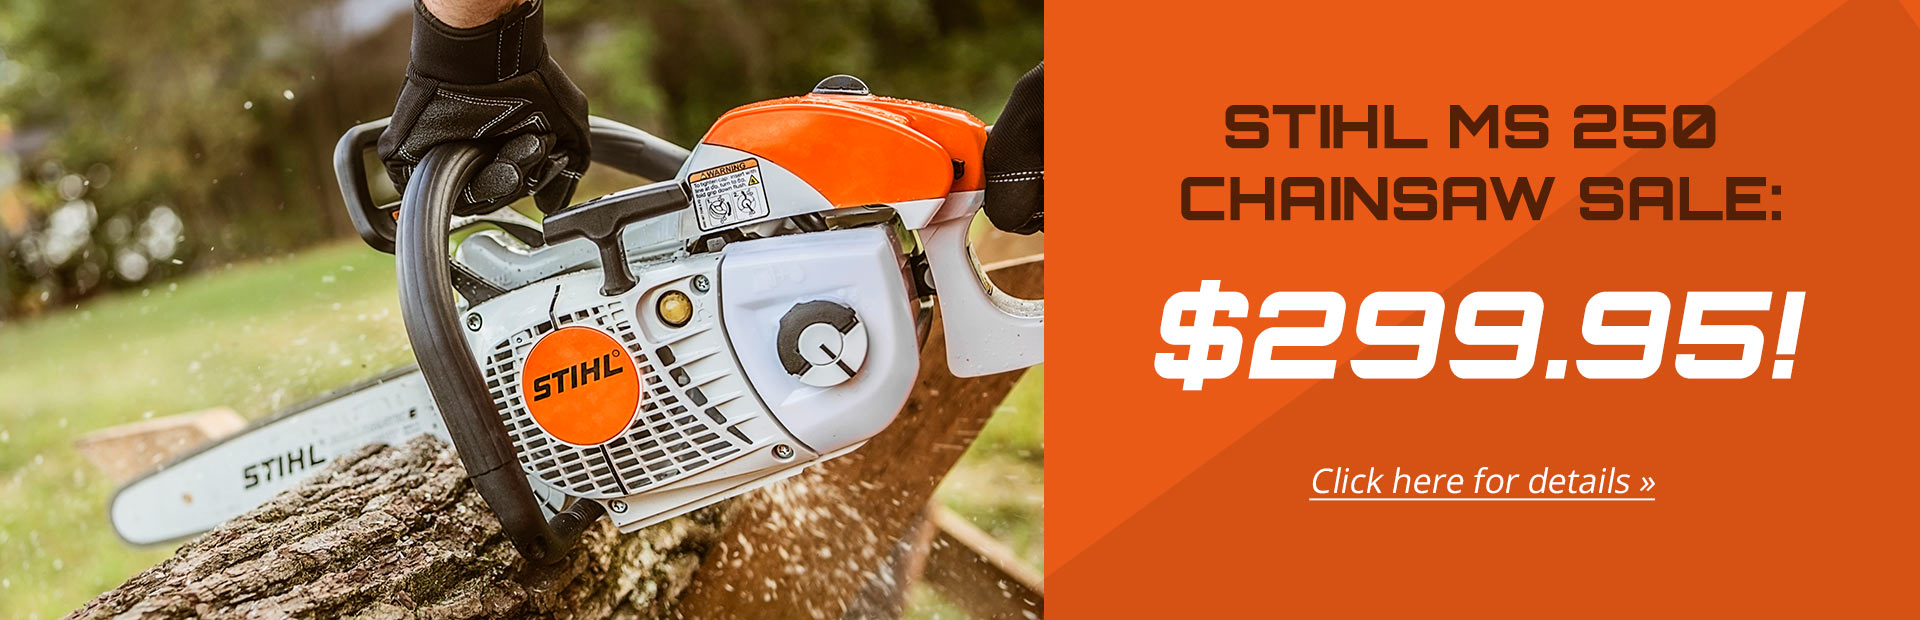 The STIHL MS 250 chainsaw is on sale for $299.95!